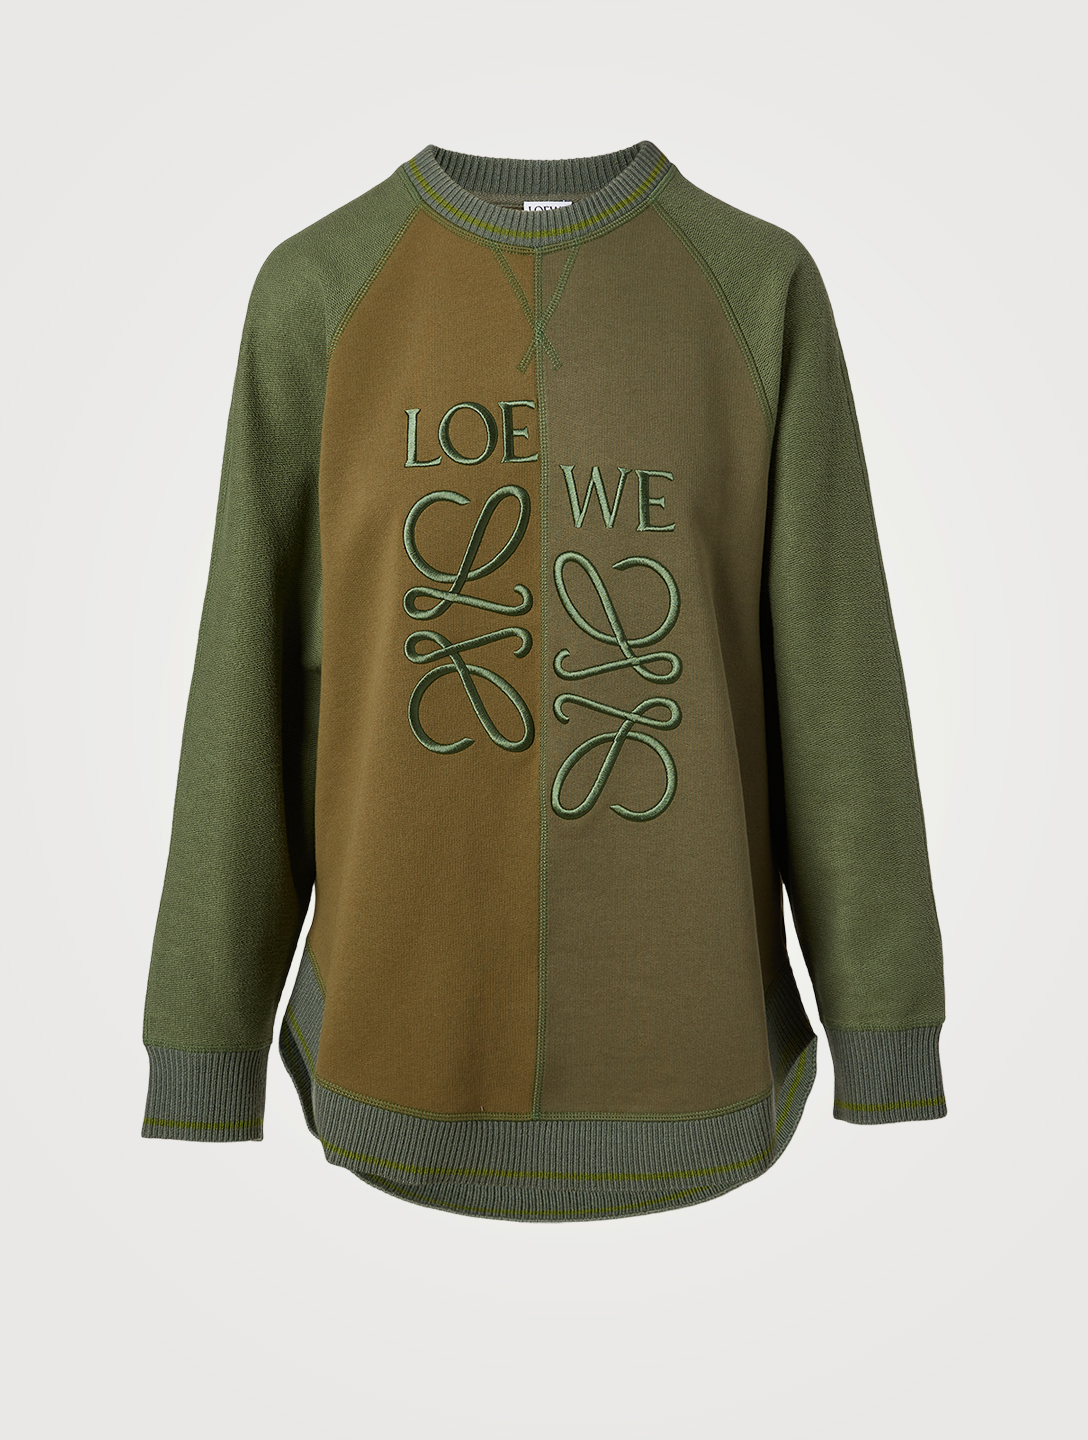 LOEWE Cotton Anagram Sweatshirt Women's Green